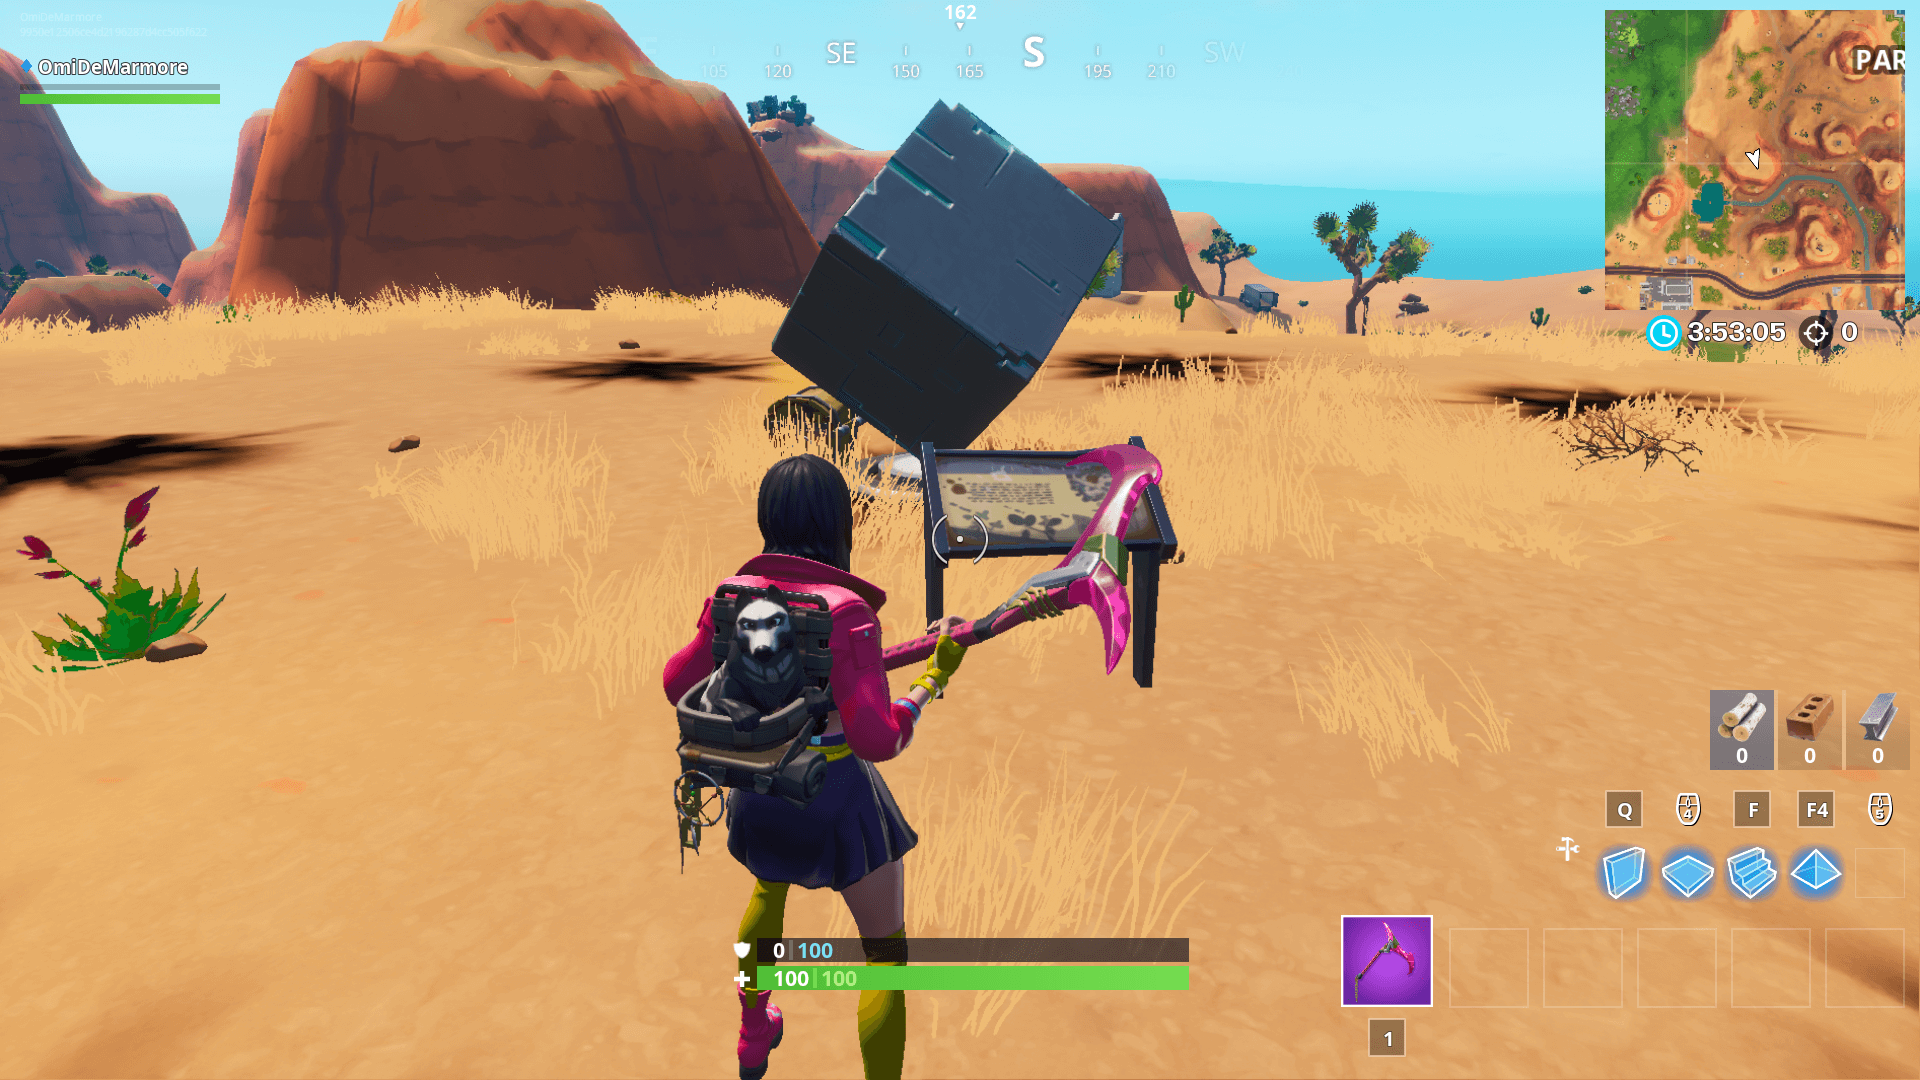 Fortnite Cube Memorial Locations In The Desert And Lake